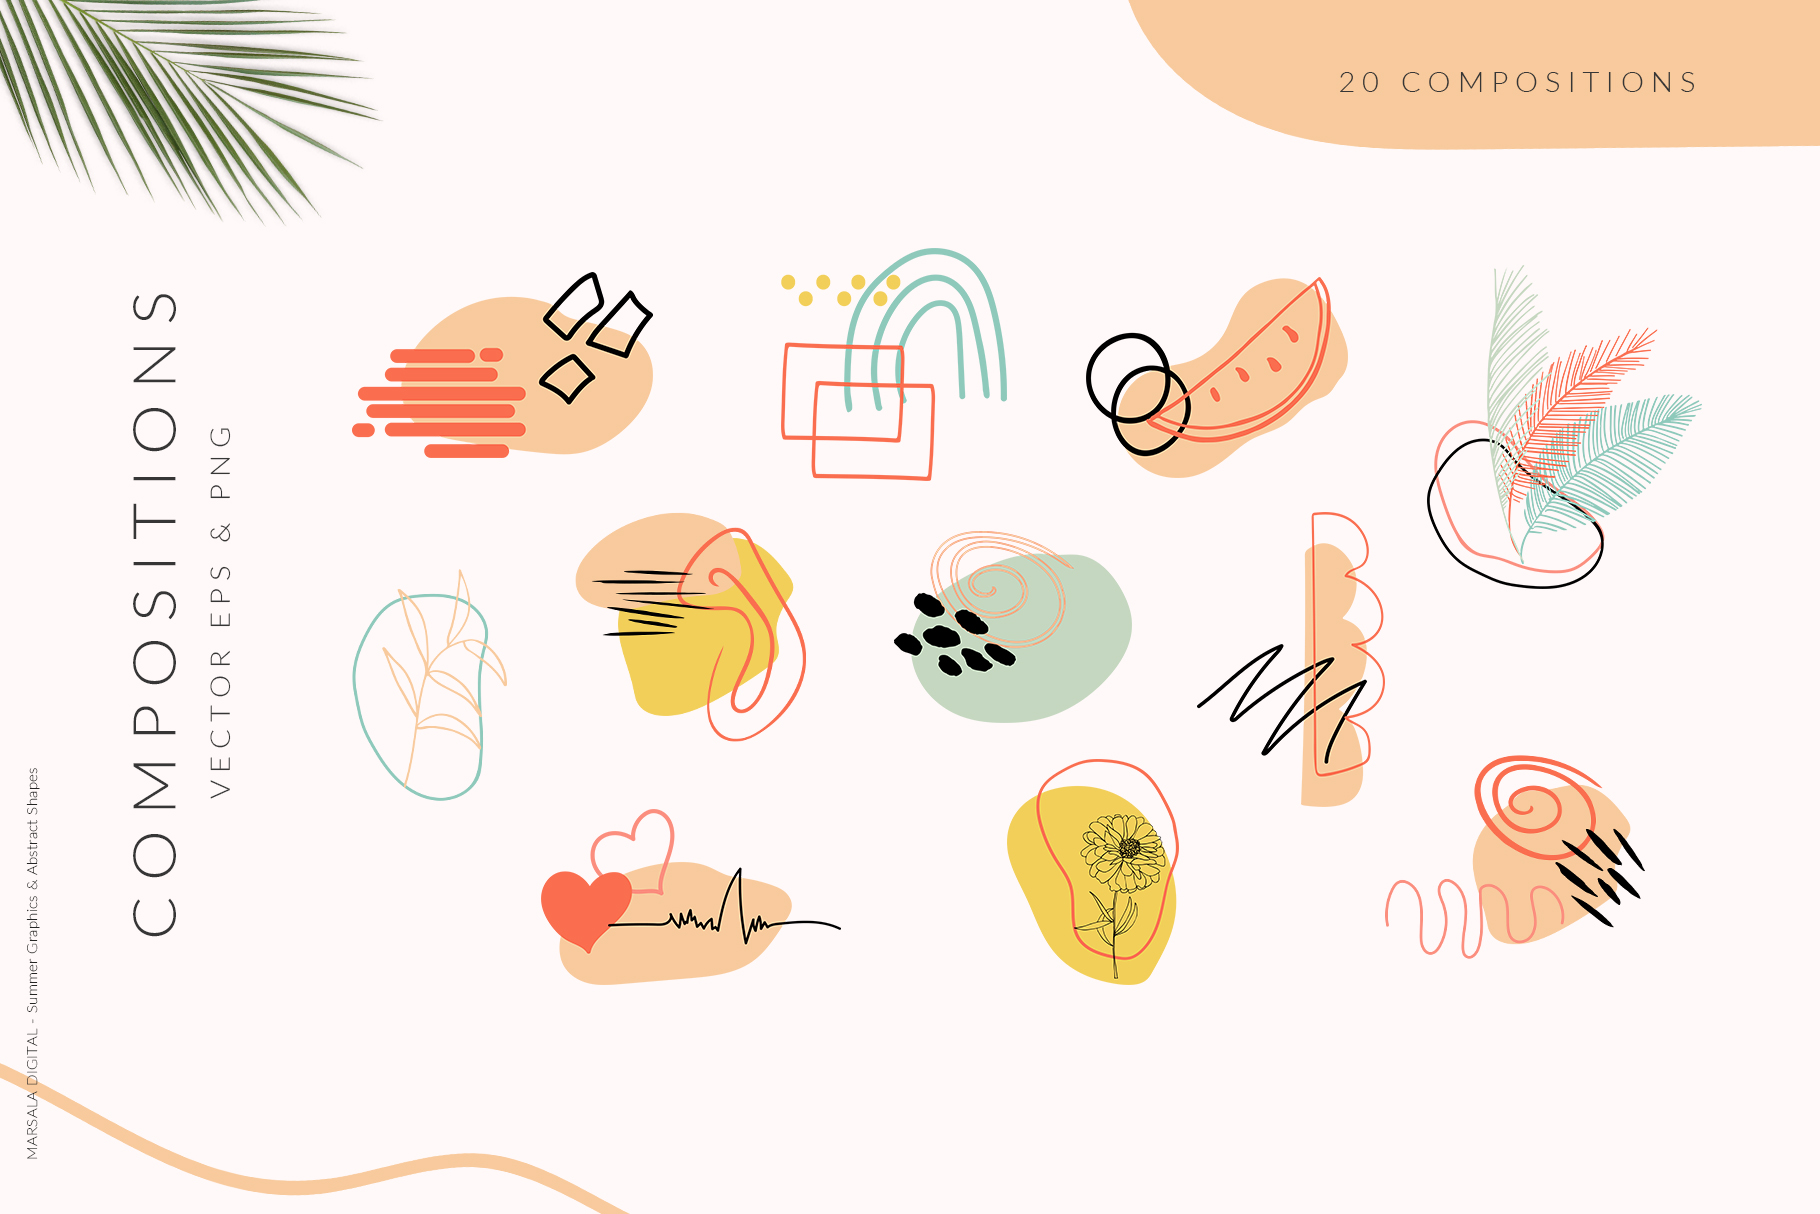 Abstract Shapes & Summer Line Art Vector Cliparts example image 4